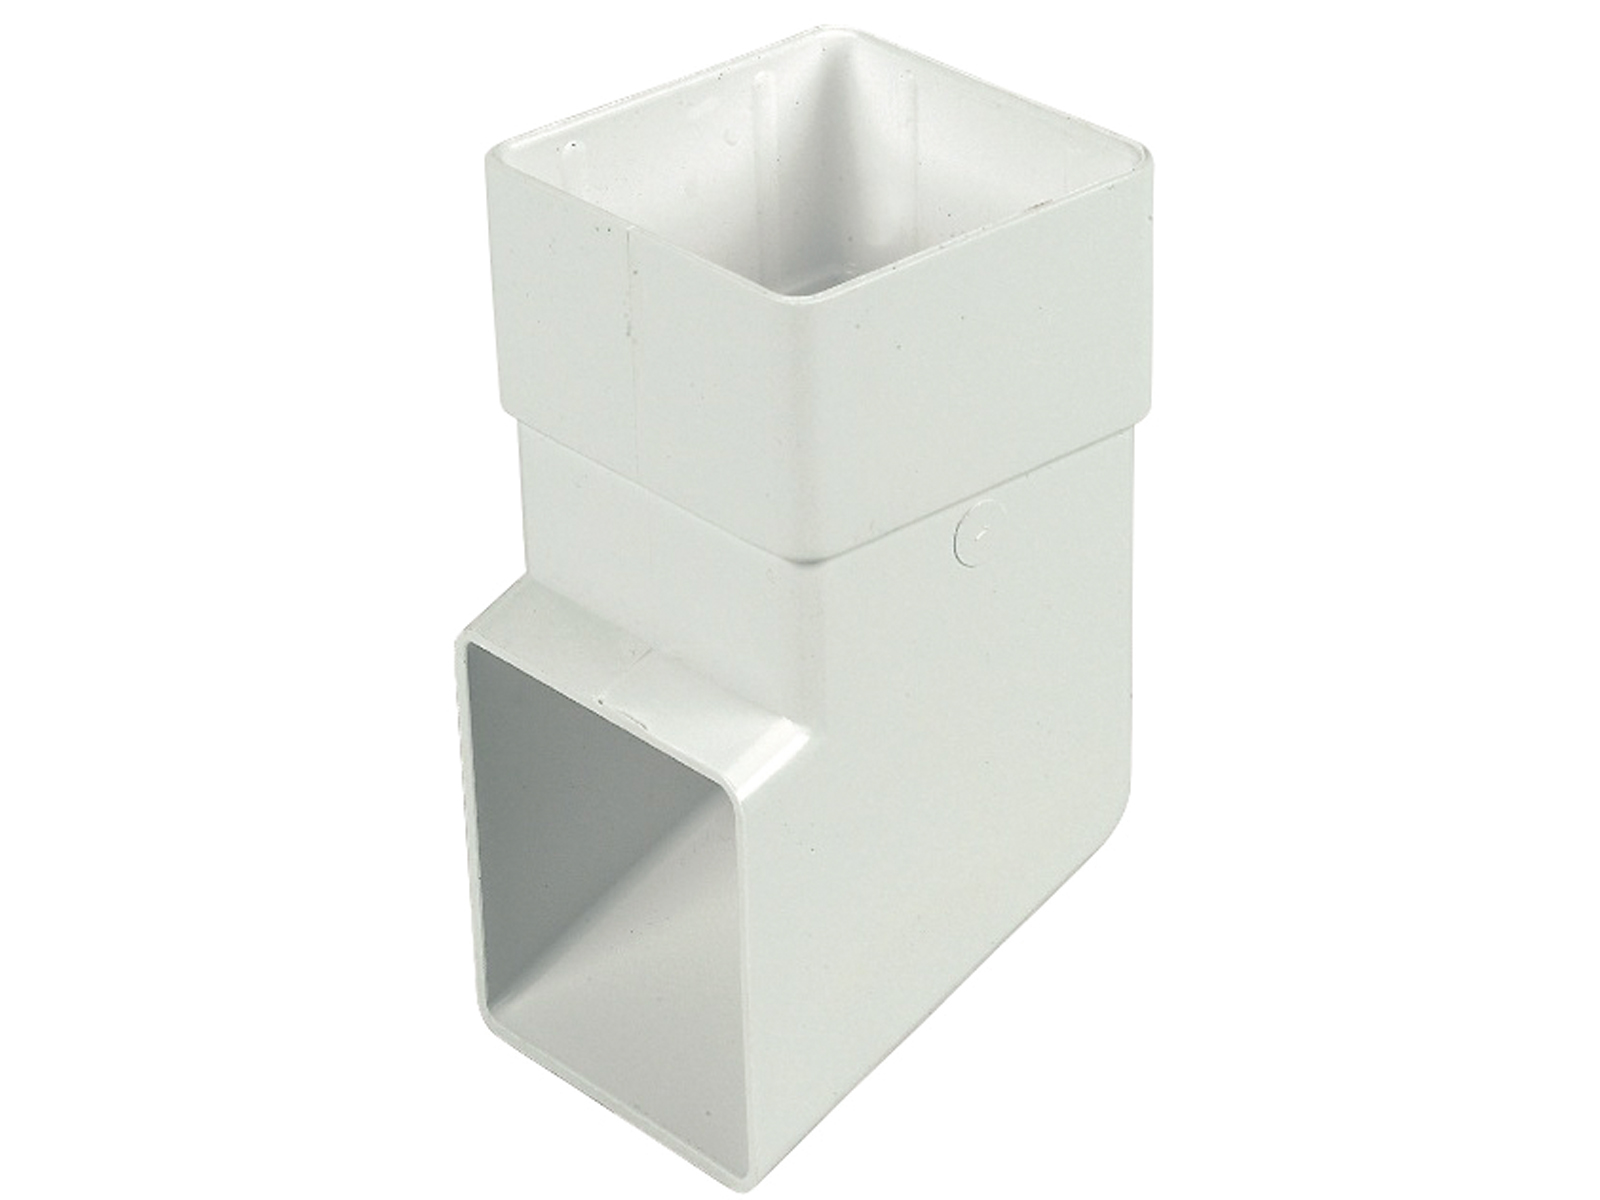 FLOPLAST RBS3WH 65MM SQUARE DOWNPIPE -  SHOE - WHITE